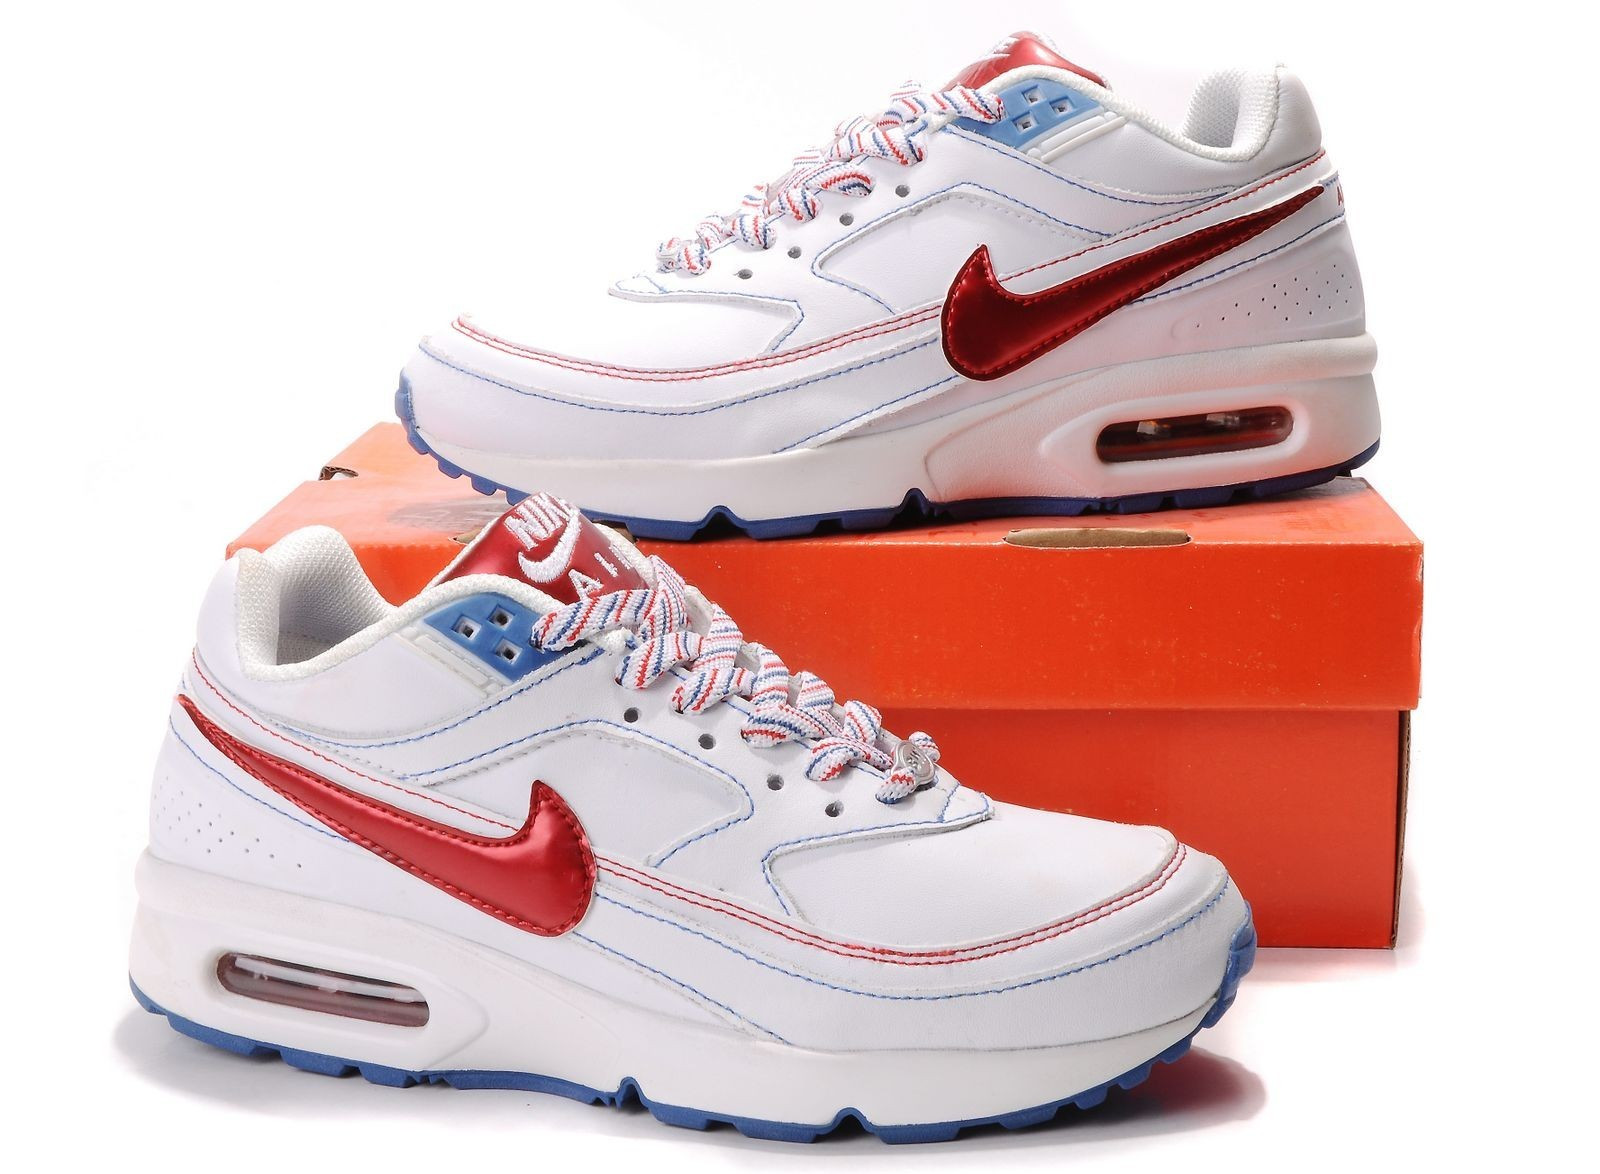 Nike Air Max Classic Contemporáneo In E Of 40  Magnífico Nike Air Max Classic